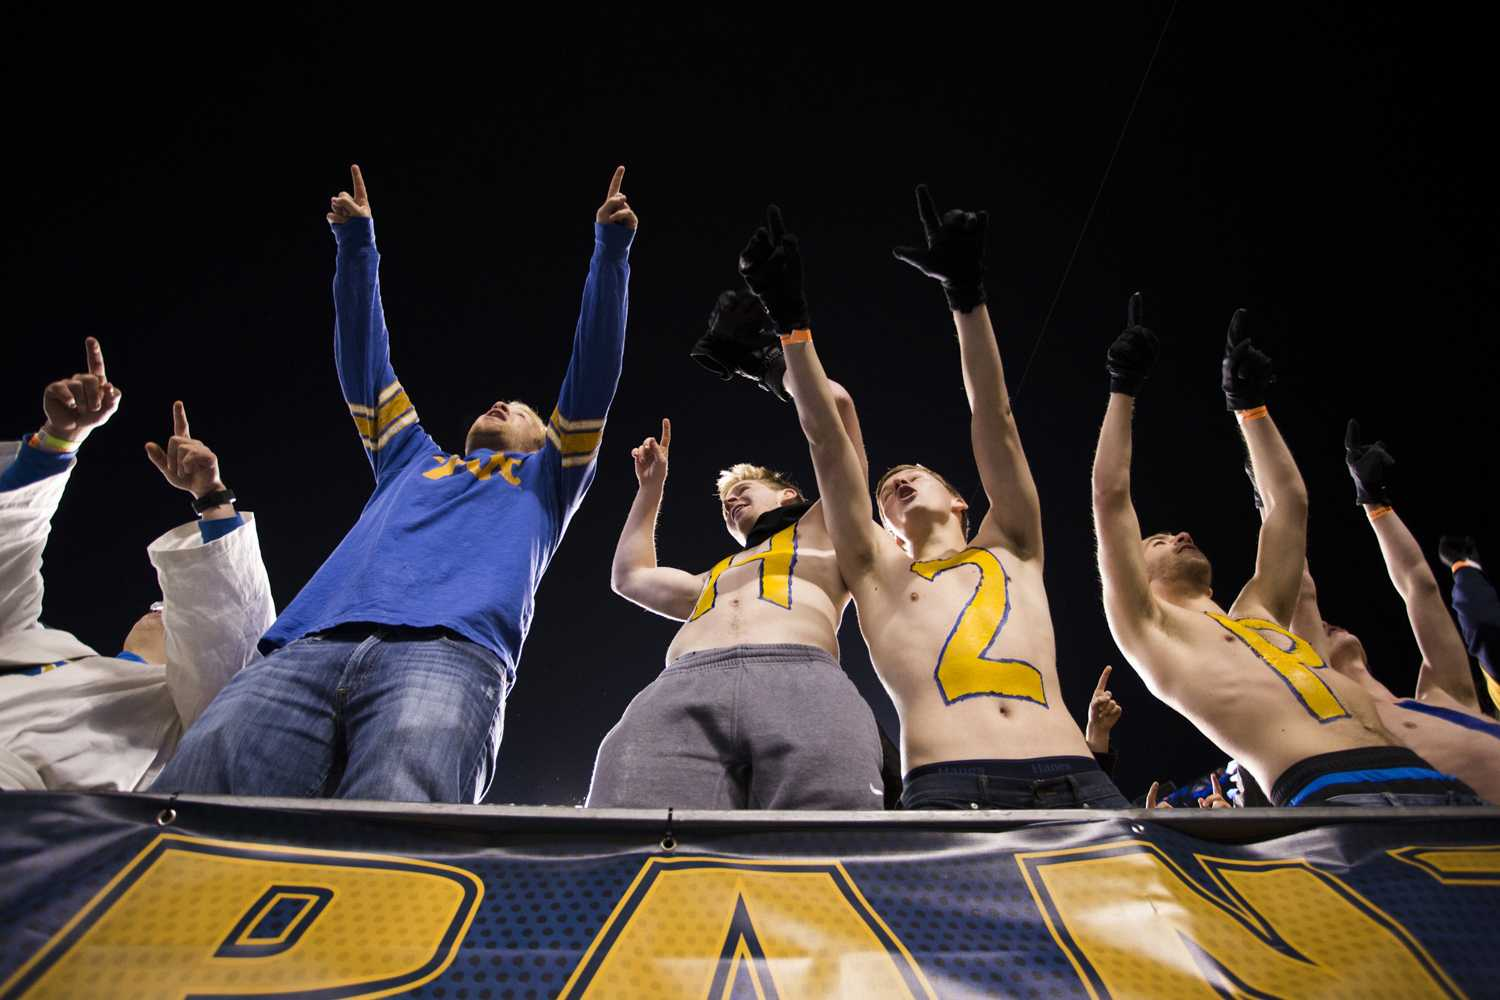 Panther Pitt fans cheer for Pitt at a home game against UNC in November 2017. (TPN file photo)